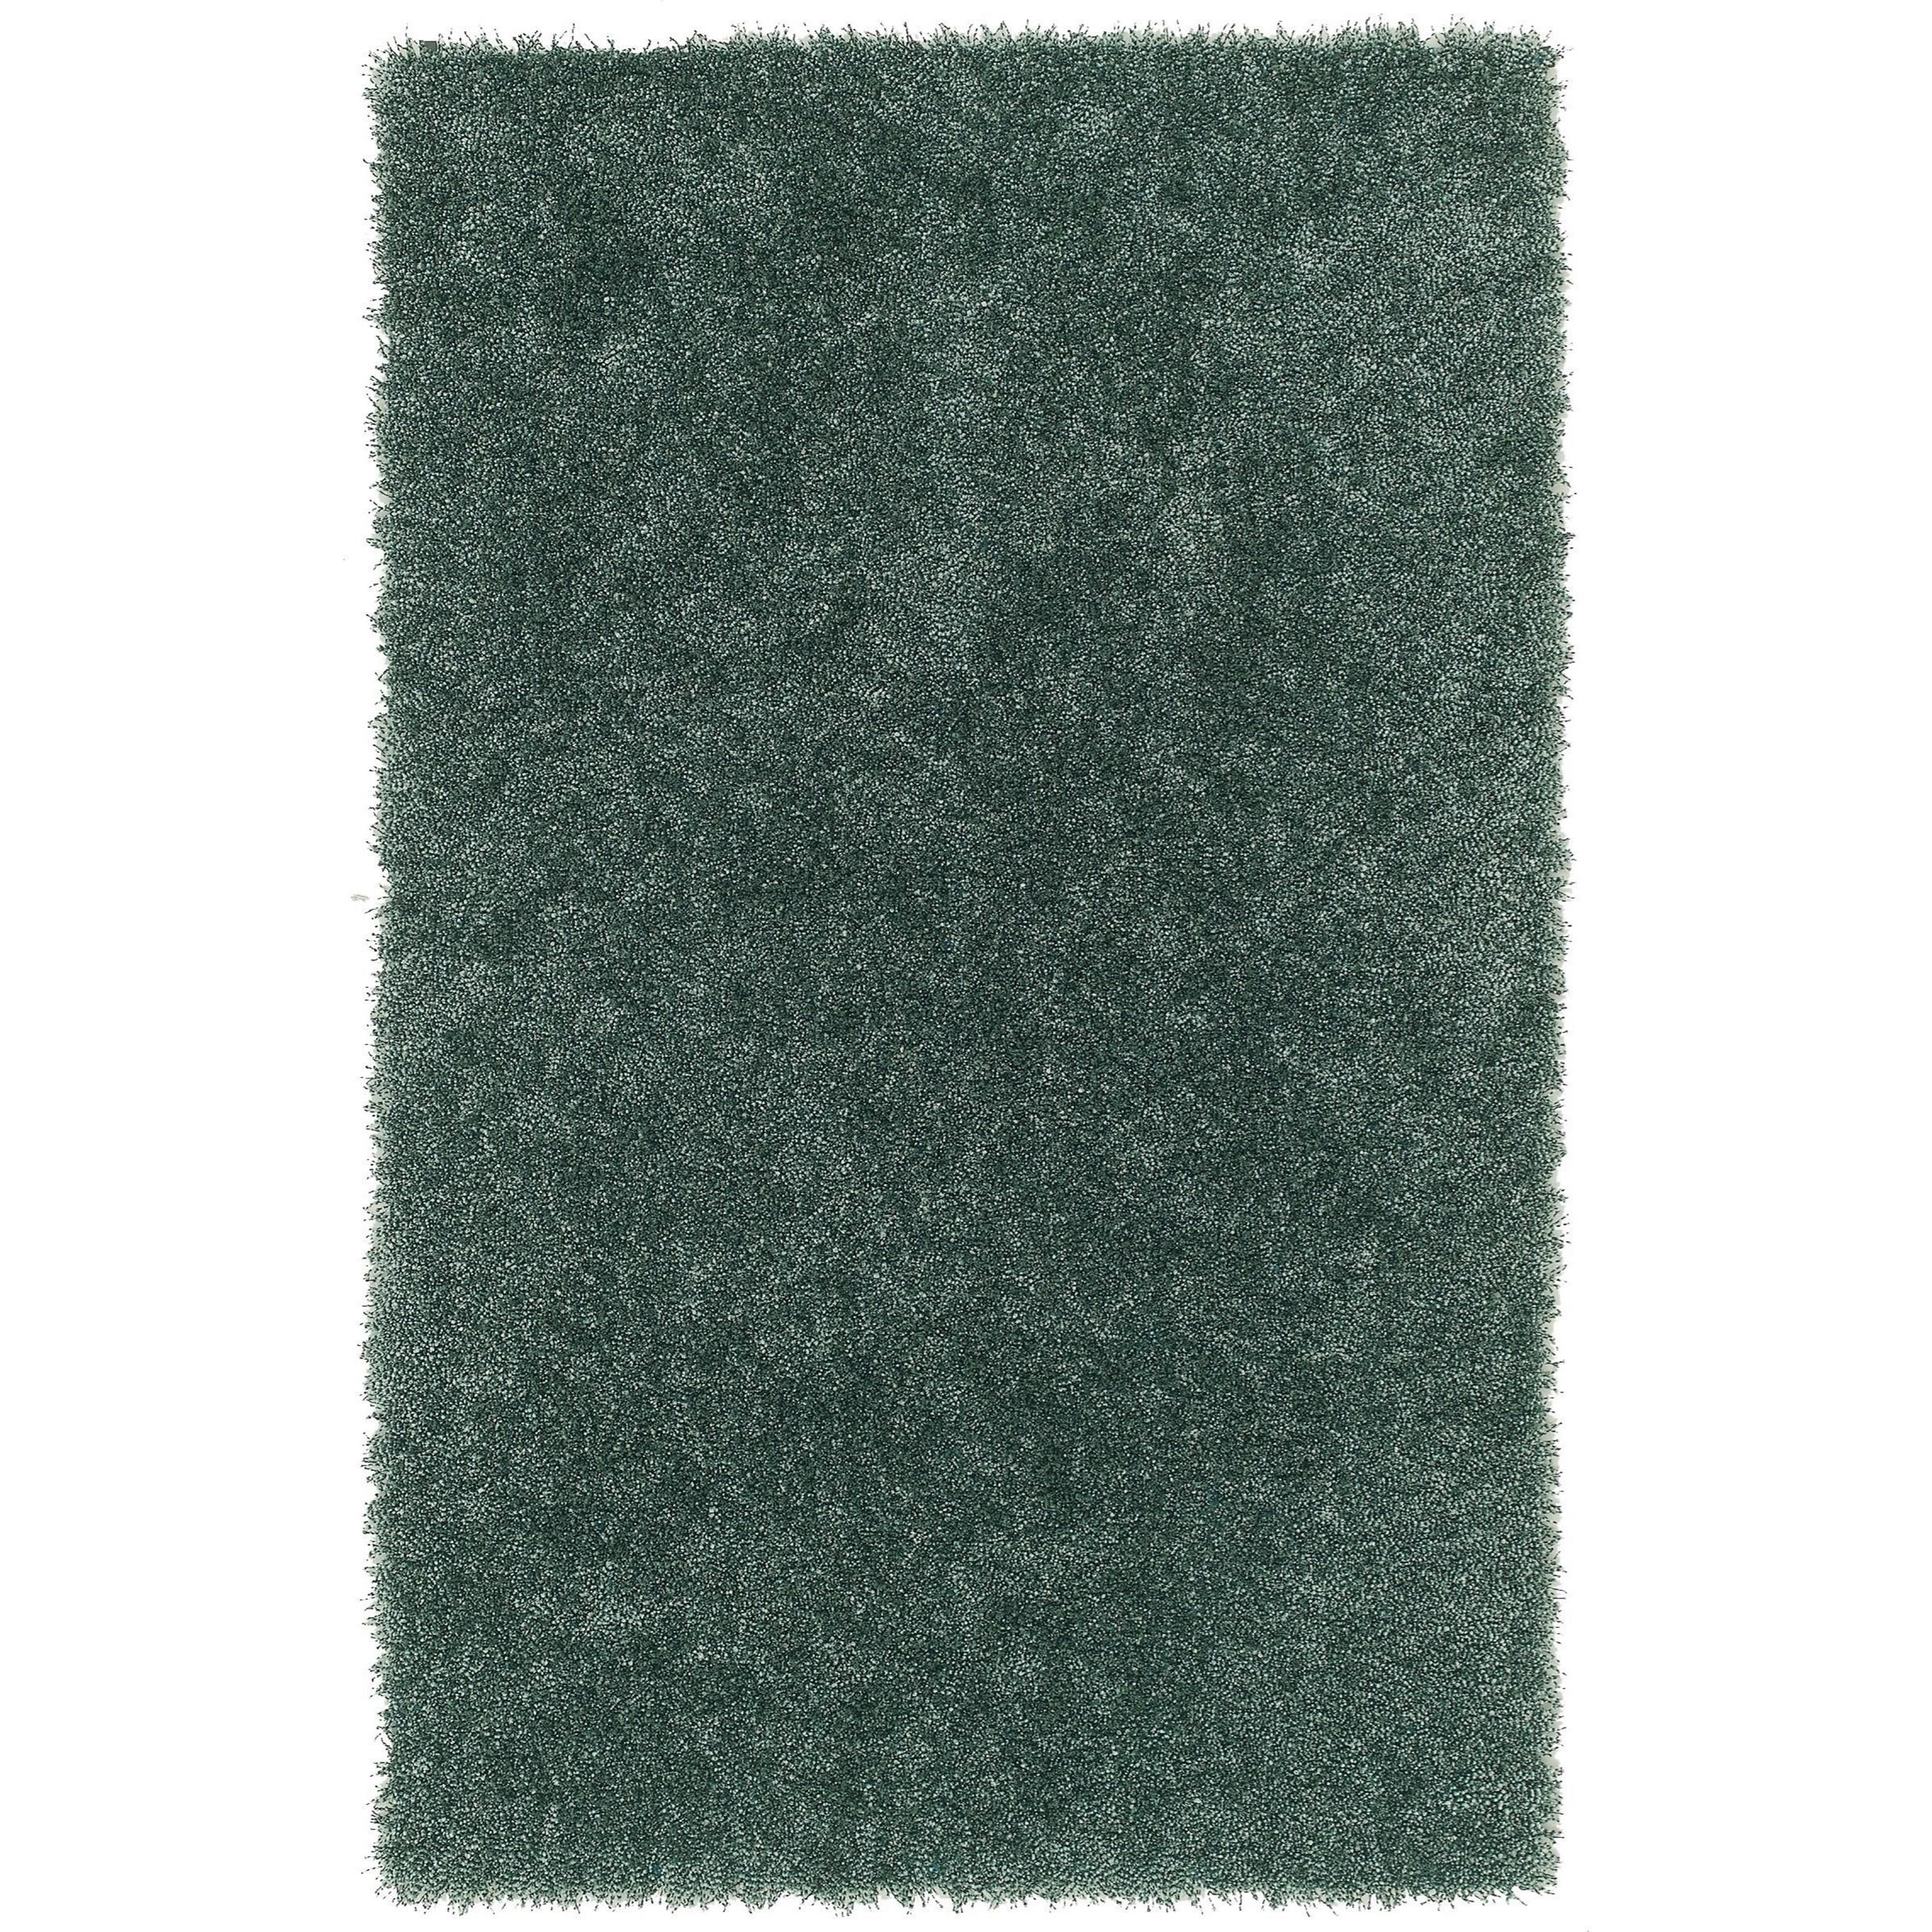 """Belize Spa 5'X7'6"""" Rug by Dalyn at Fashion Furniture"""